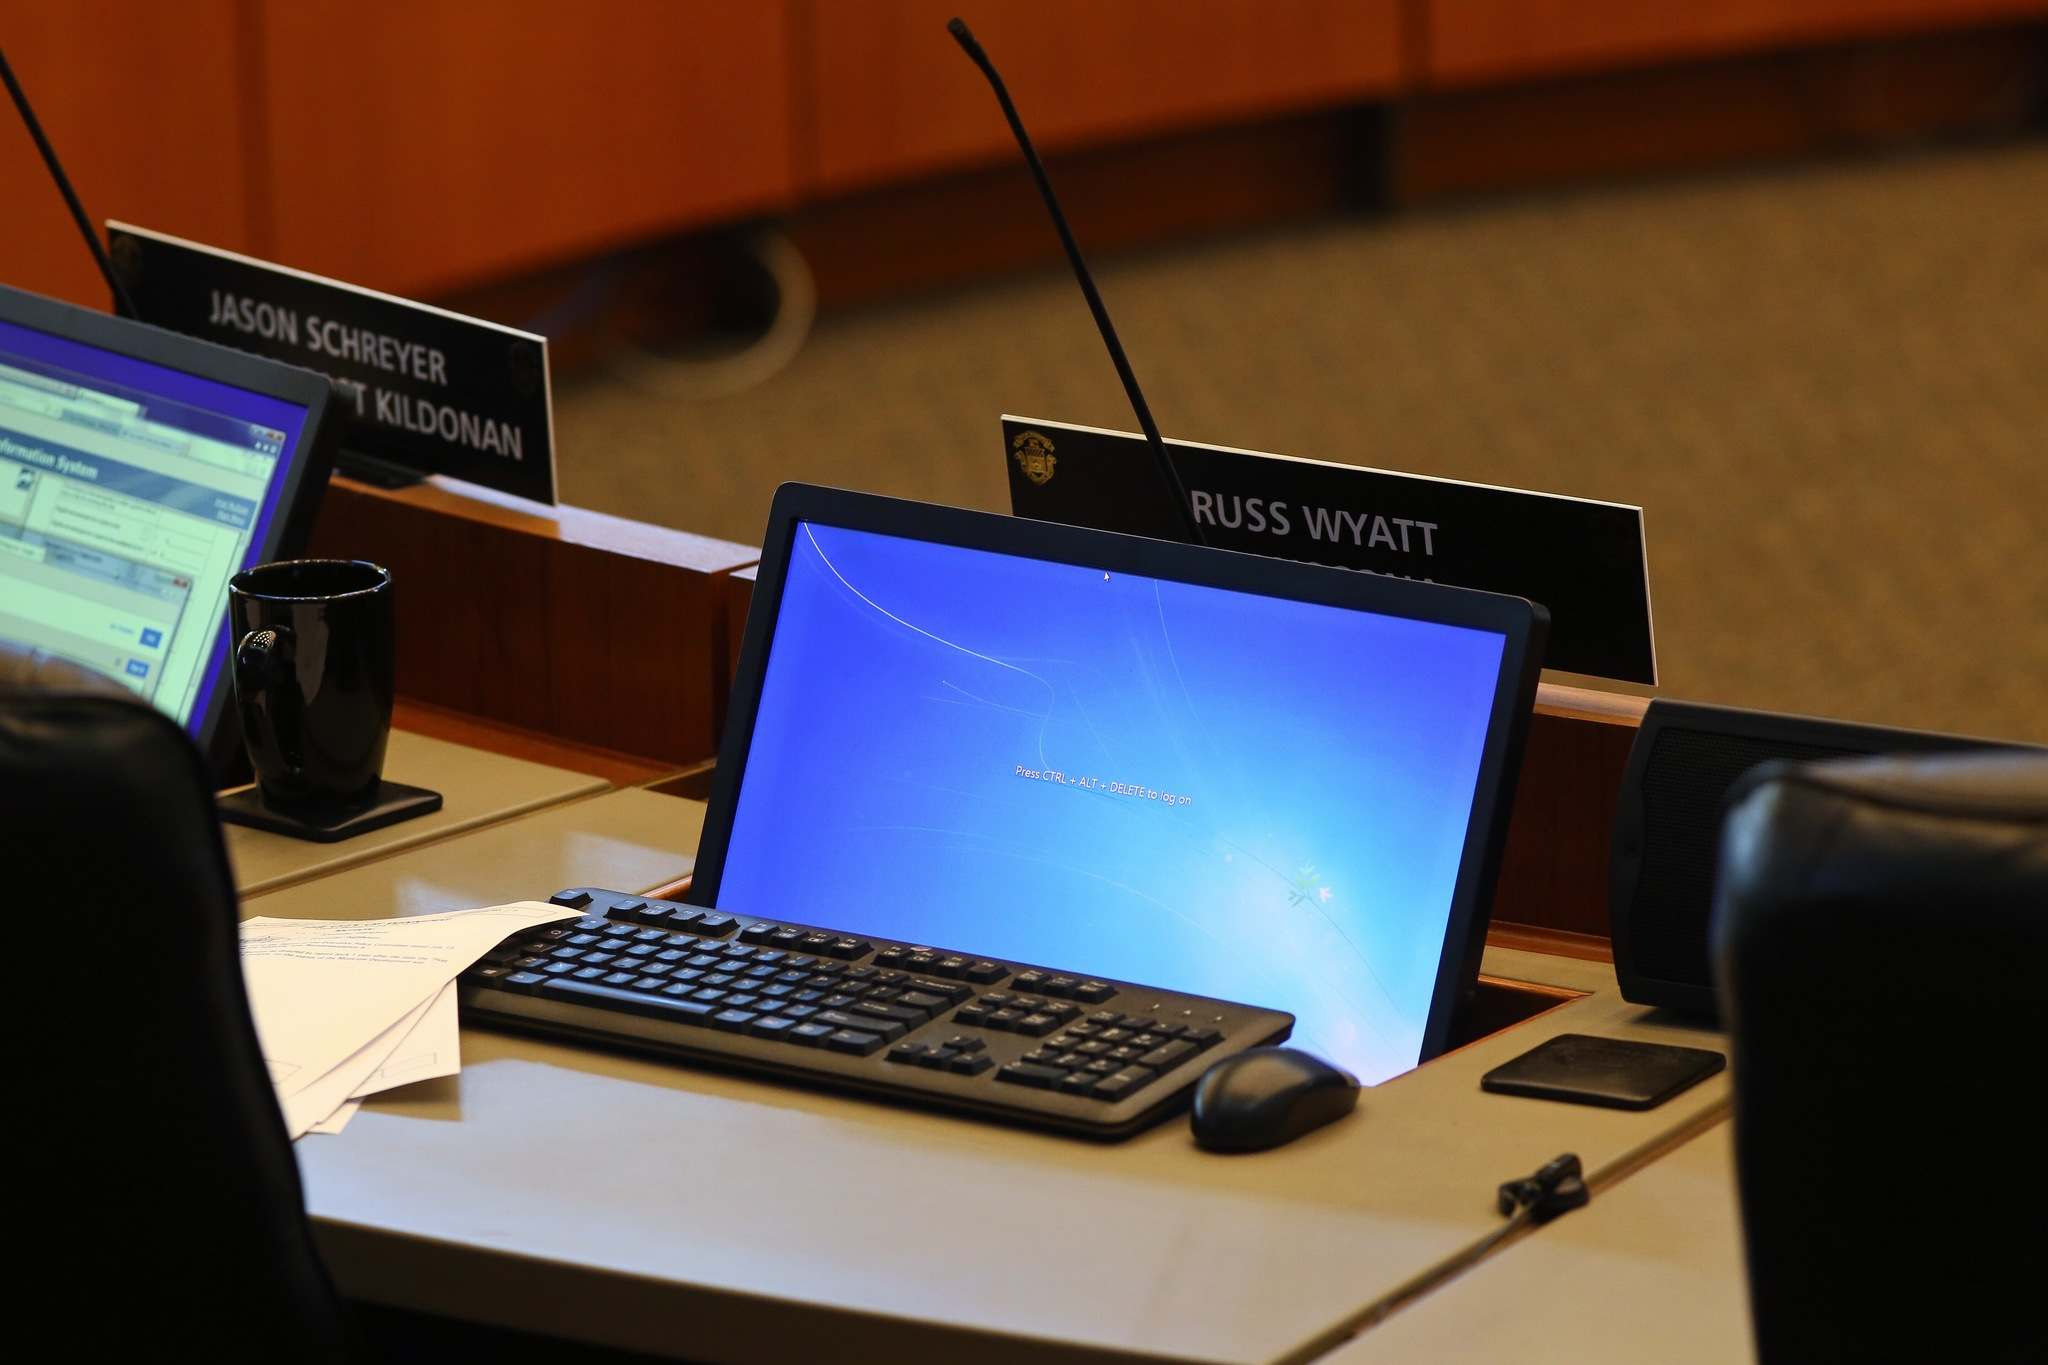 Coun. Russ Wyatt missed last week's city council meeting, the first meeting since the charges were laid. (Mike Deal / Winnipeg Free Press Files)</p>